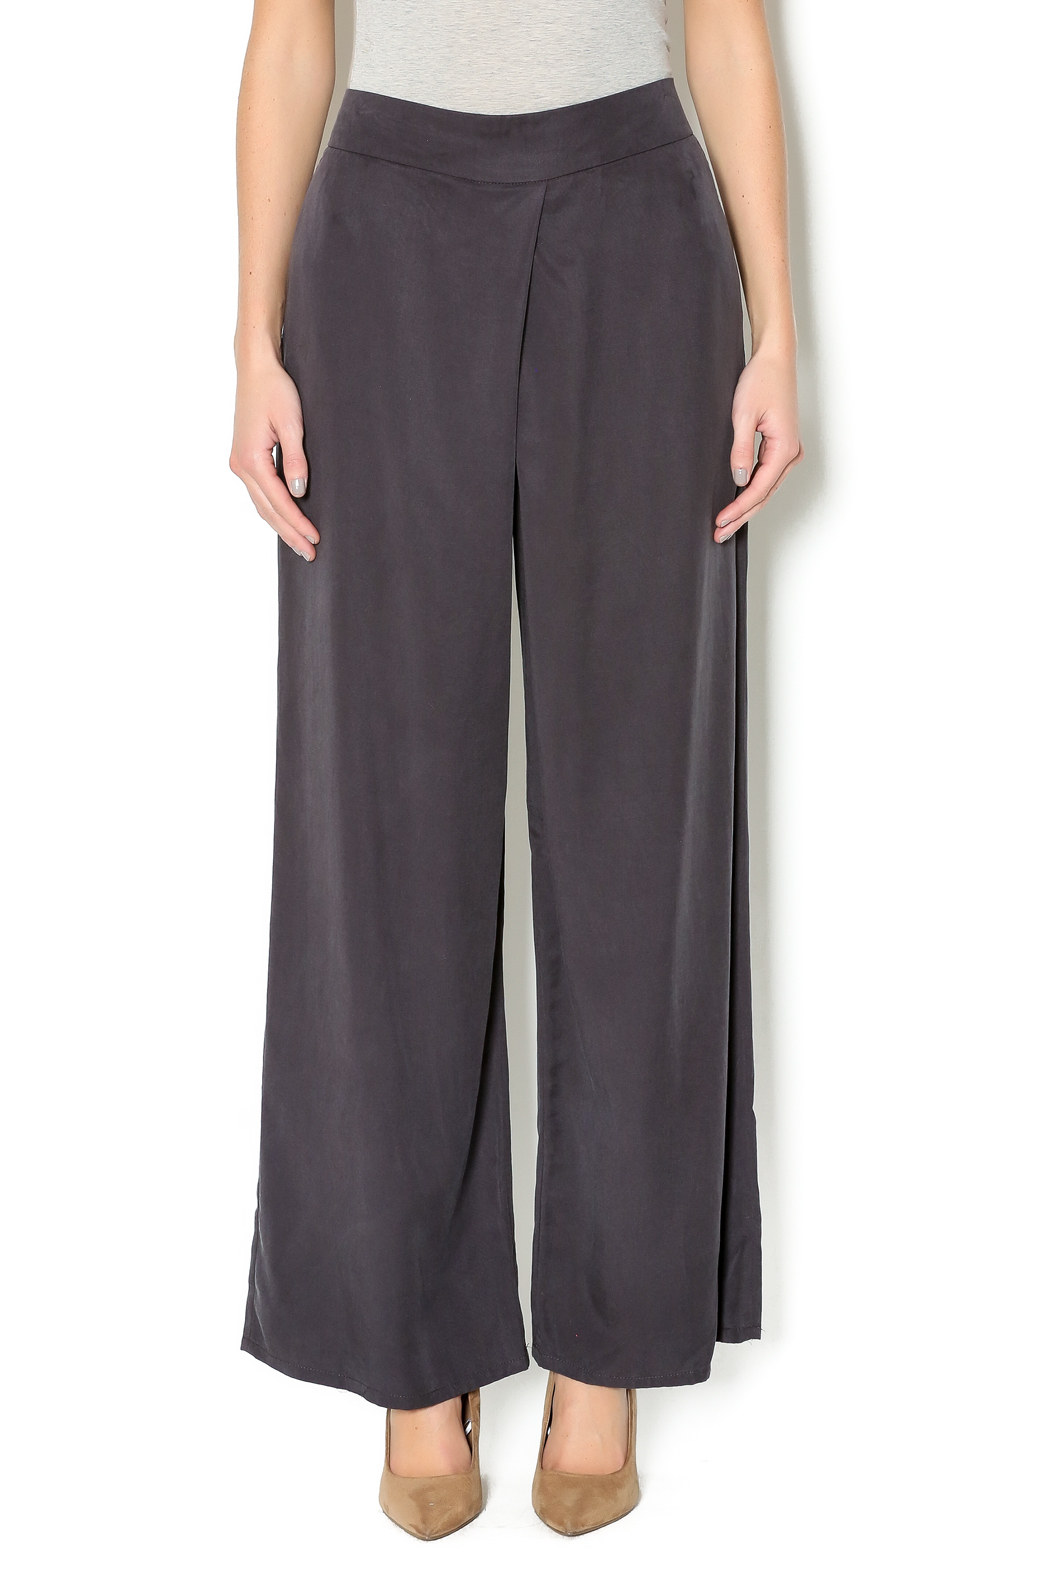 Milla Dressy Palazzo Pant - Front Cropped Image